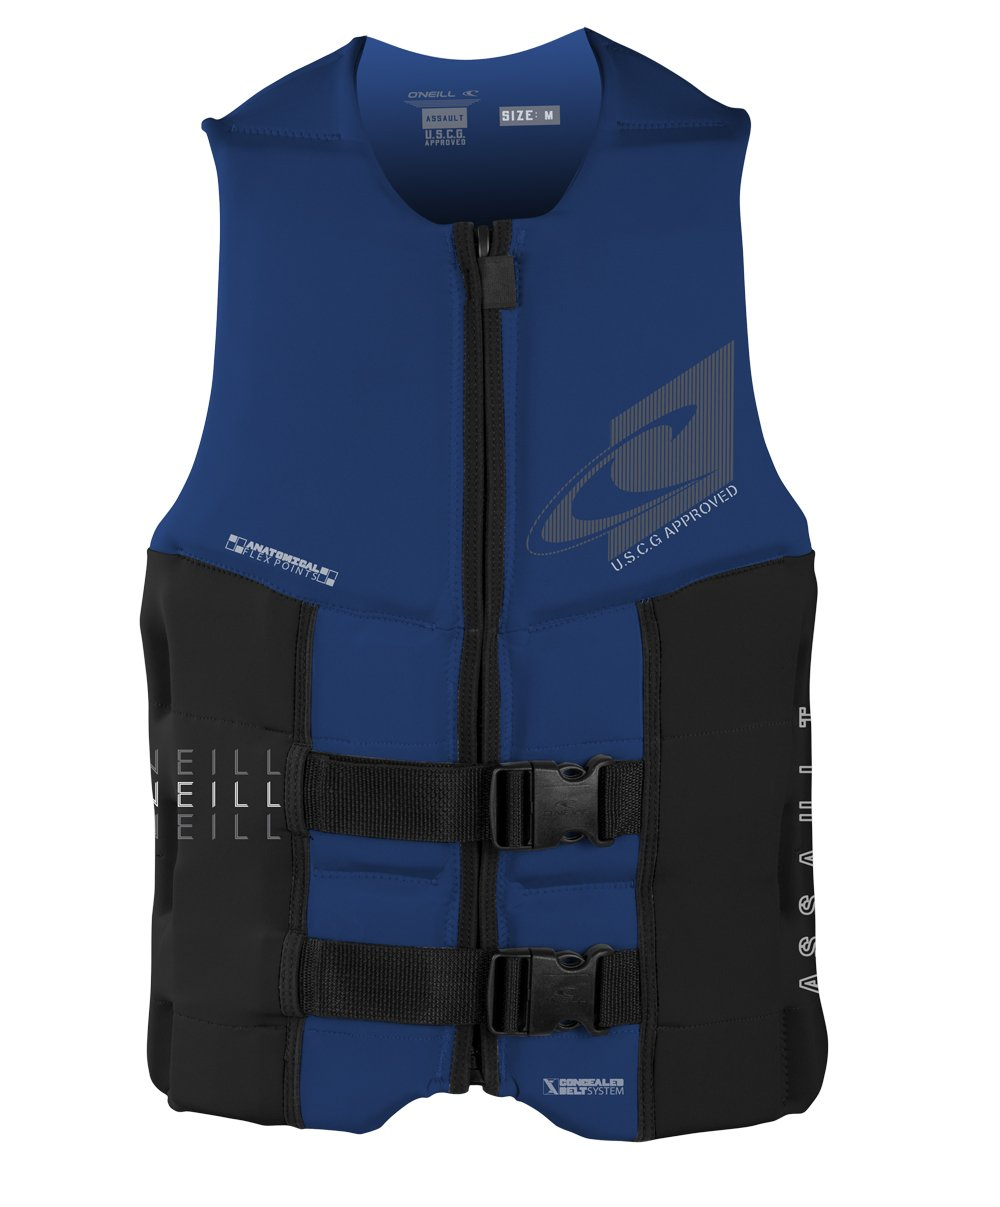 O'Neill Wetsuits Men's Assault USCG Life Vest, Pacific/Black